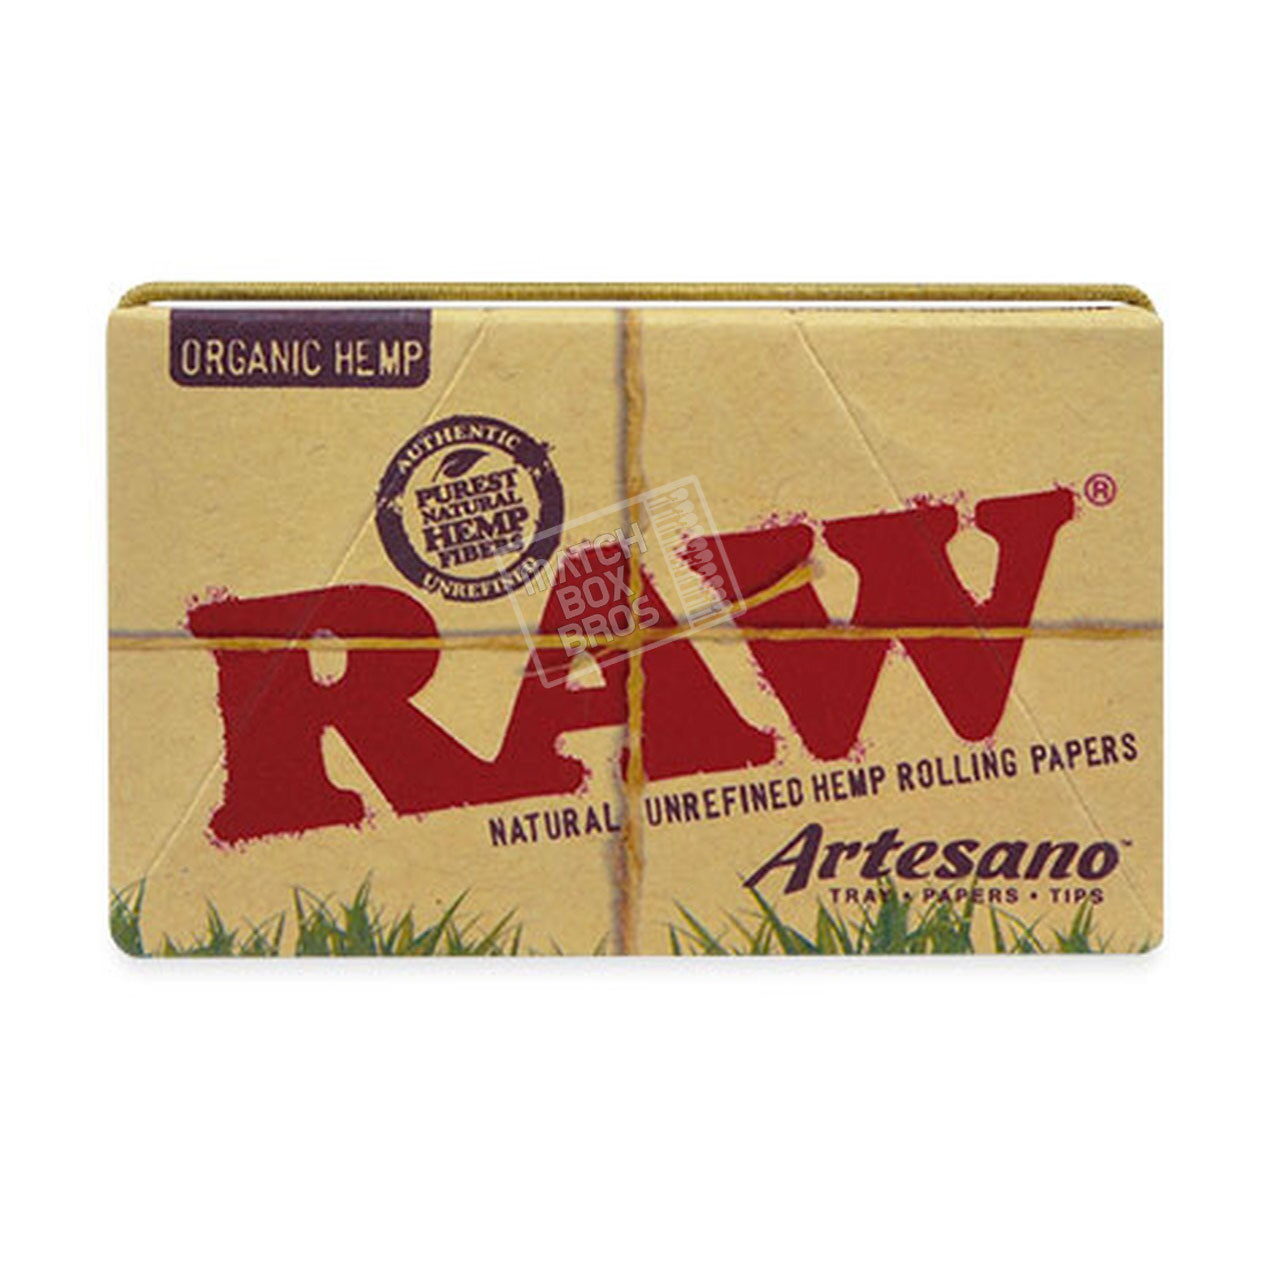 RAW Organic Hemp Artesano 1 1/4 Rolling Paper Sealed Box Front